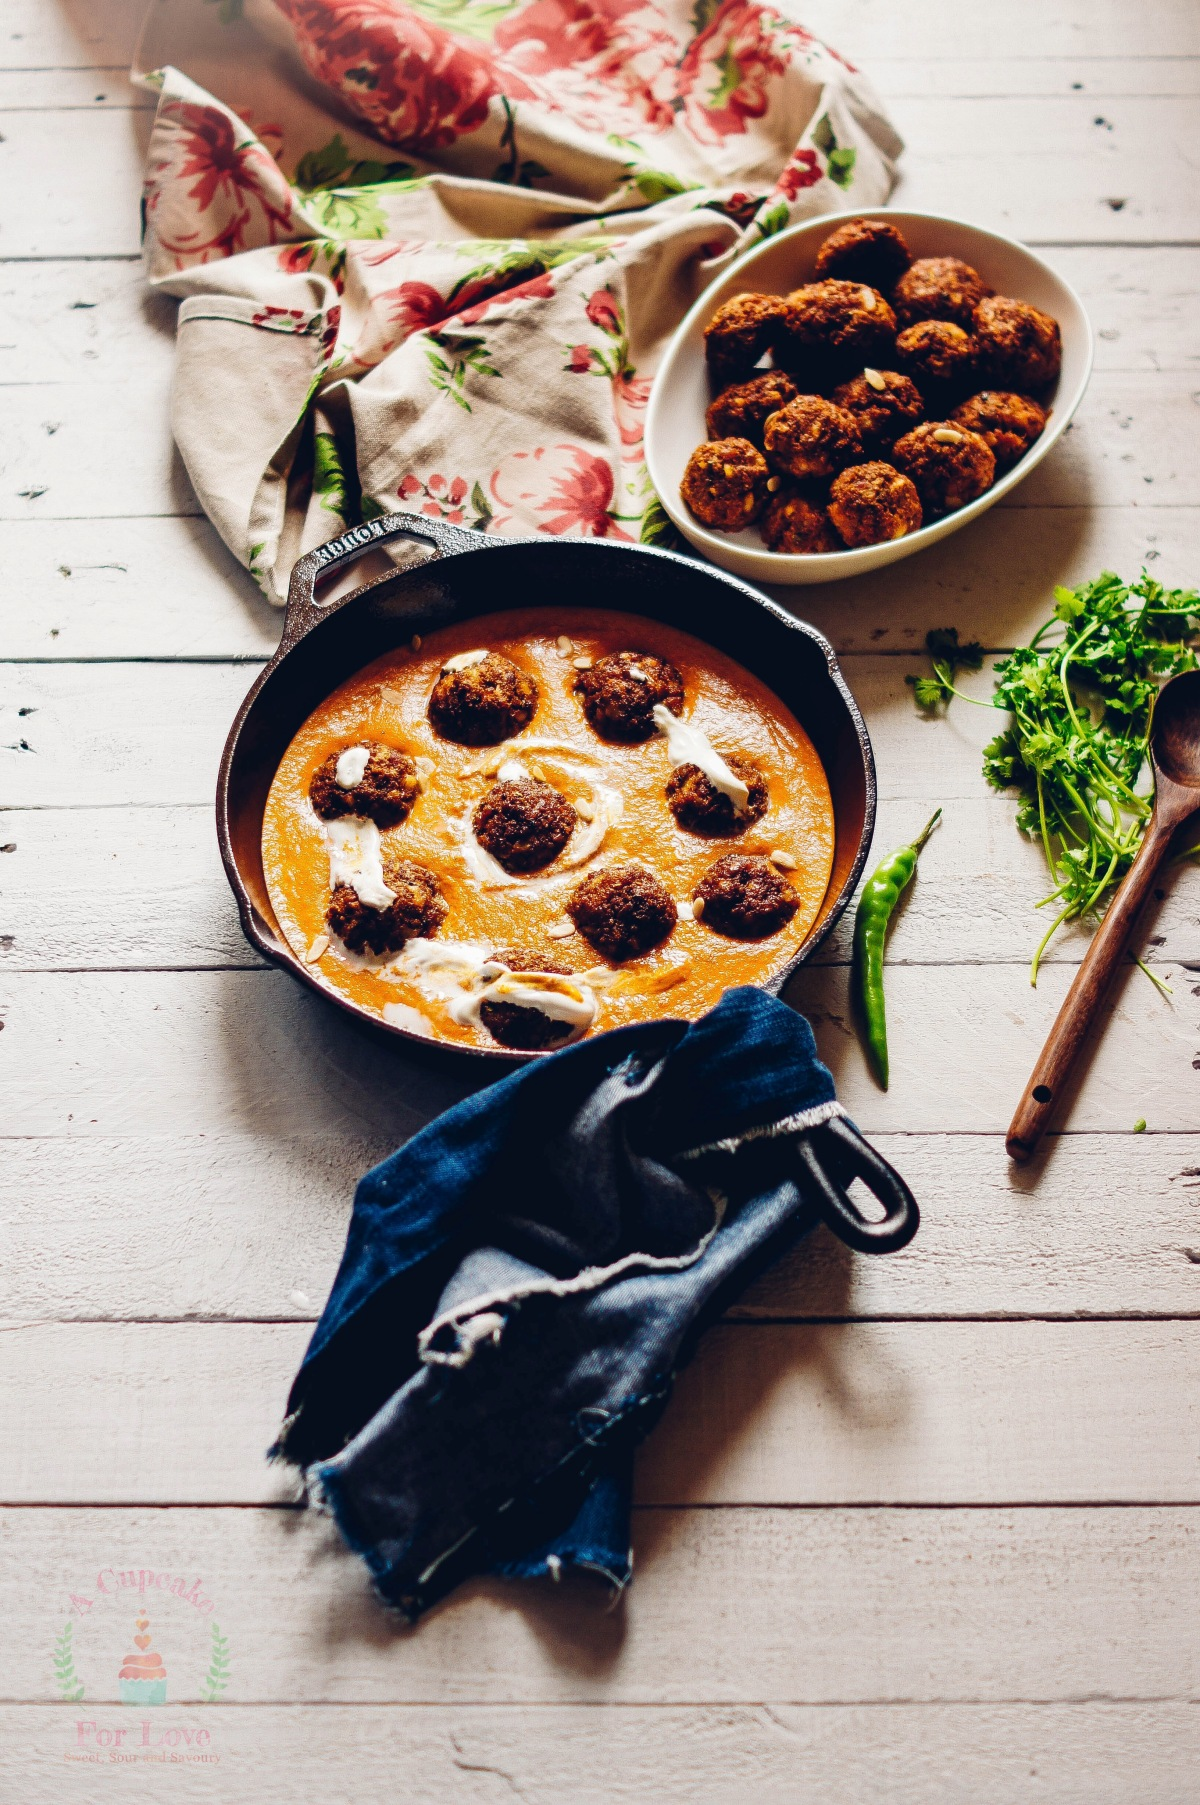 Keema Kofta – Mutton Meat Balls curried in a spicy tomato gravy